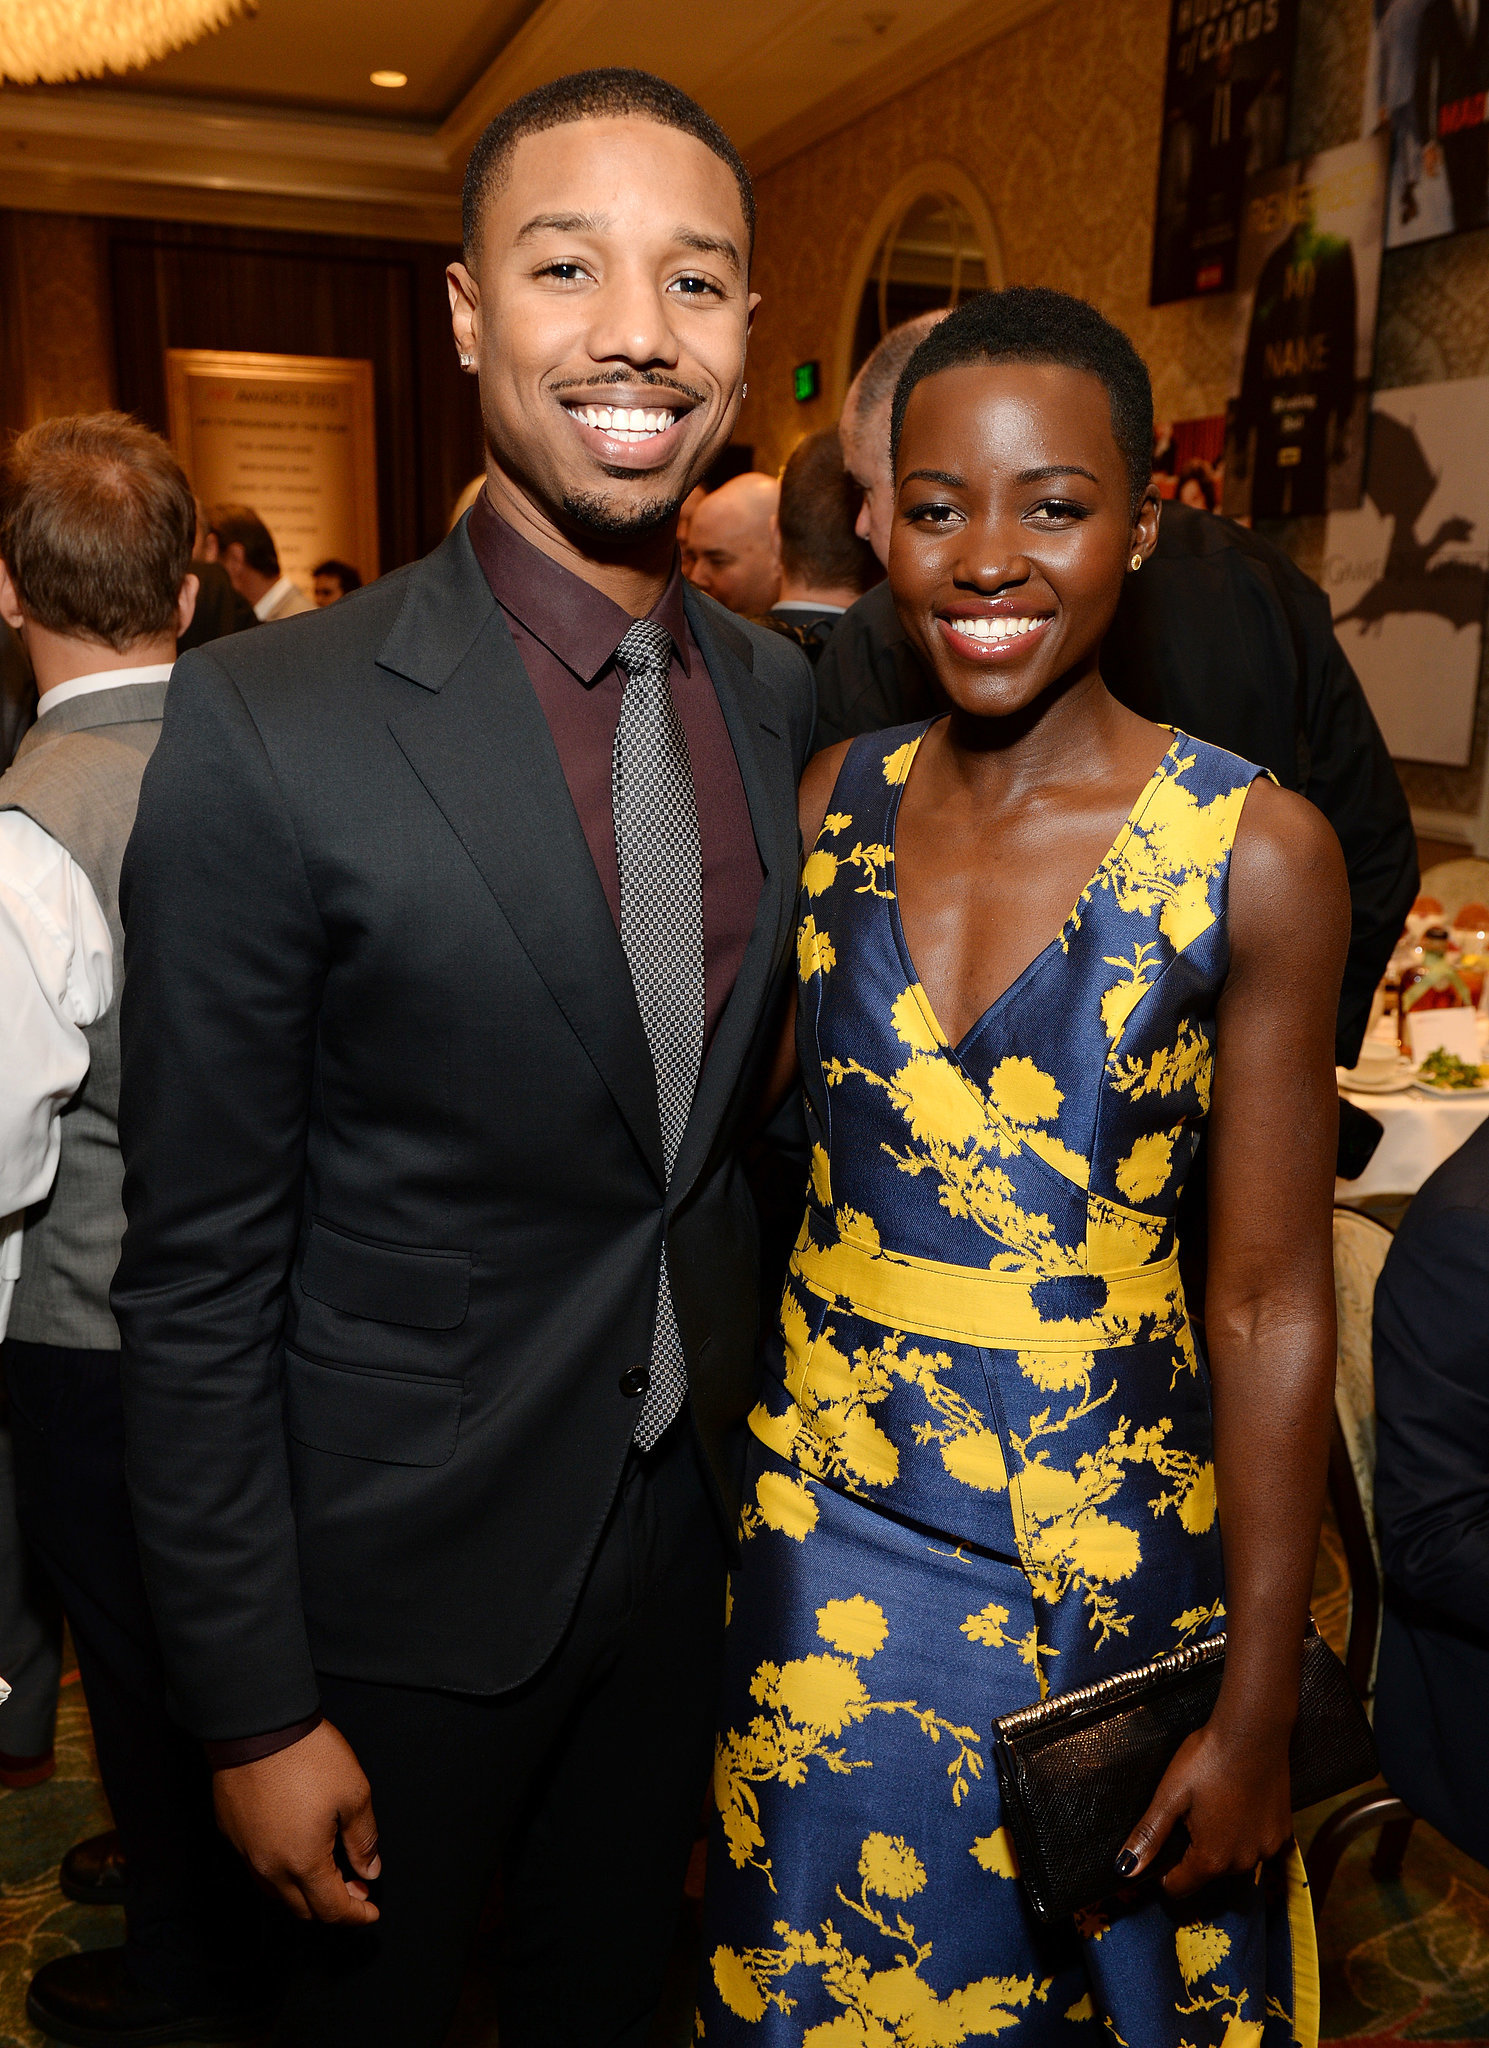 She hung out with Michael B. Jordan at the AFI Awards Luncheon.